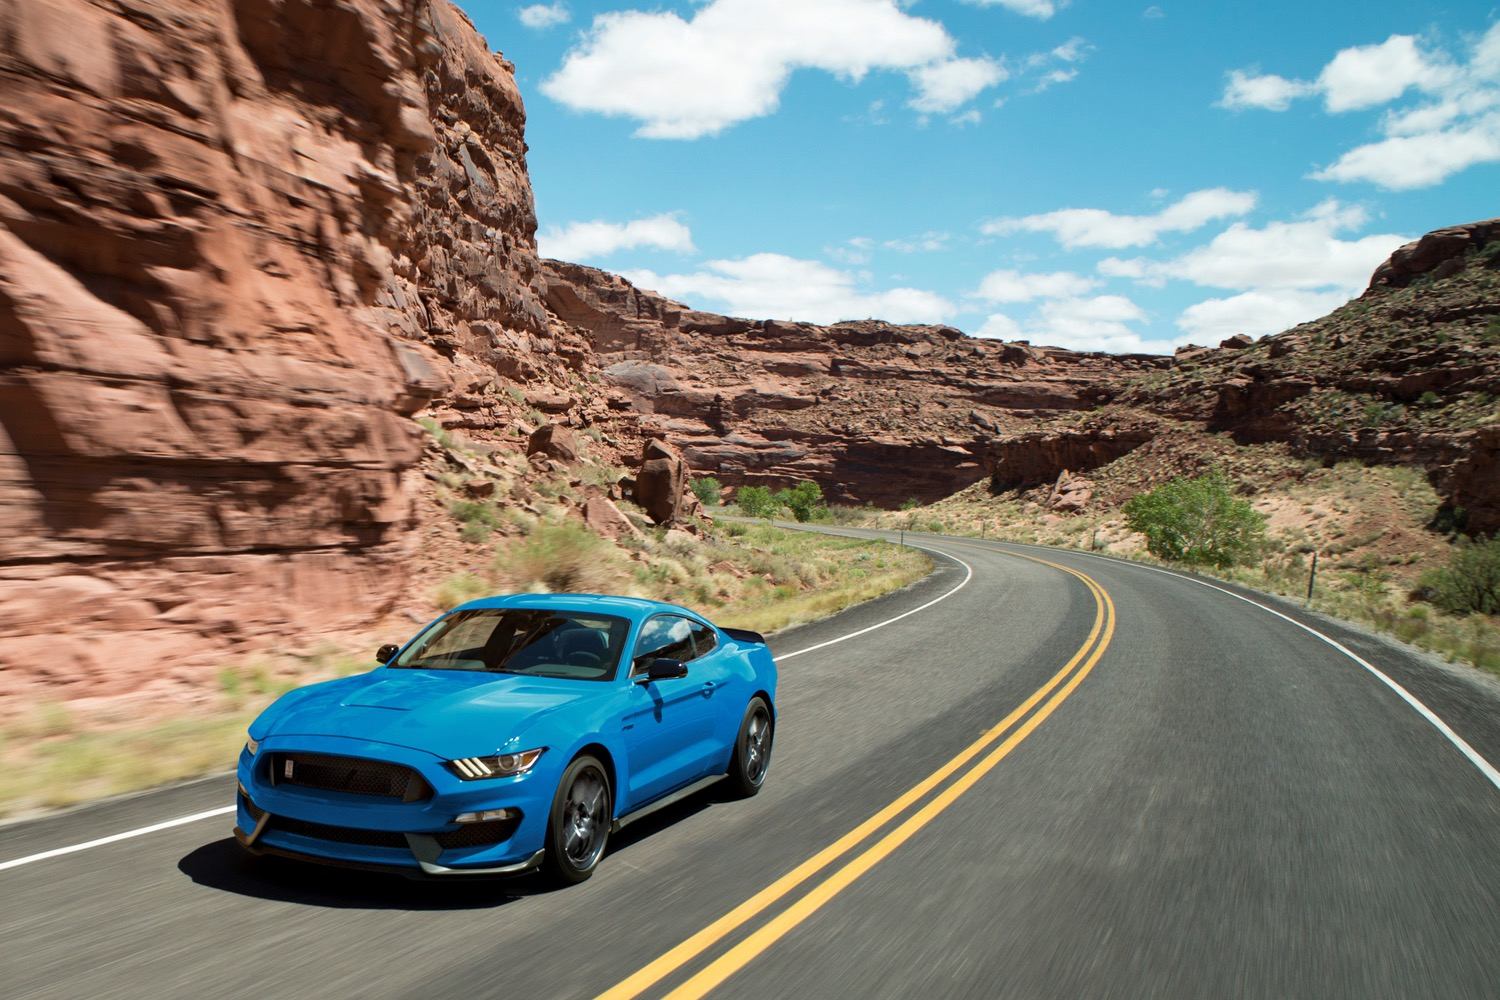 Ford S Shelby Gt350 And Gt350r Are Back For One More Model Year